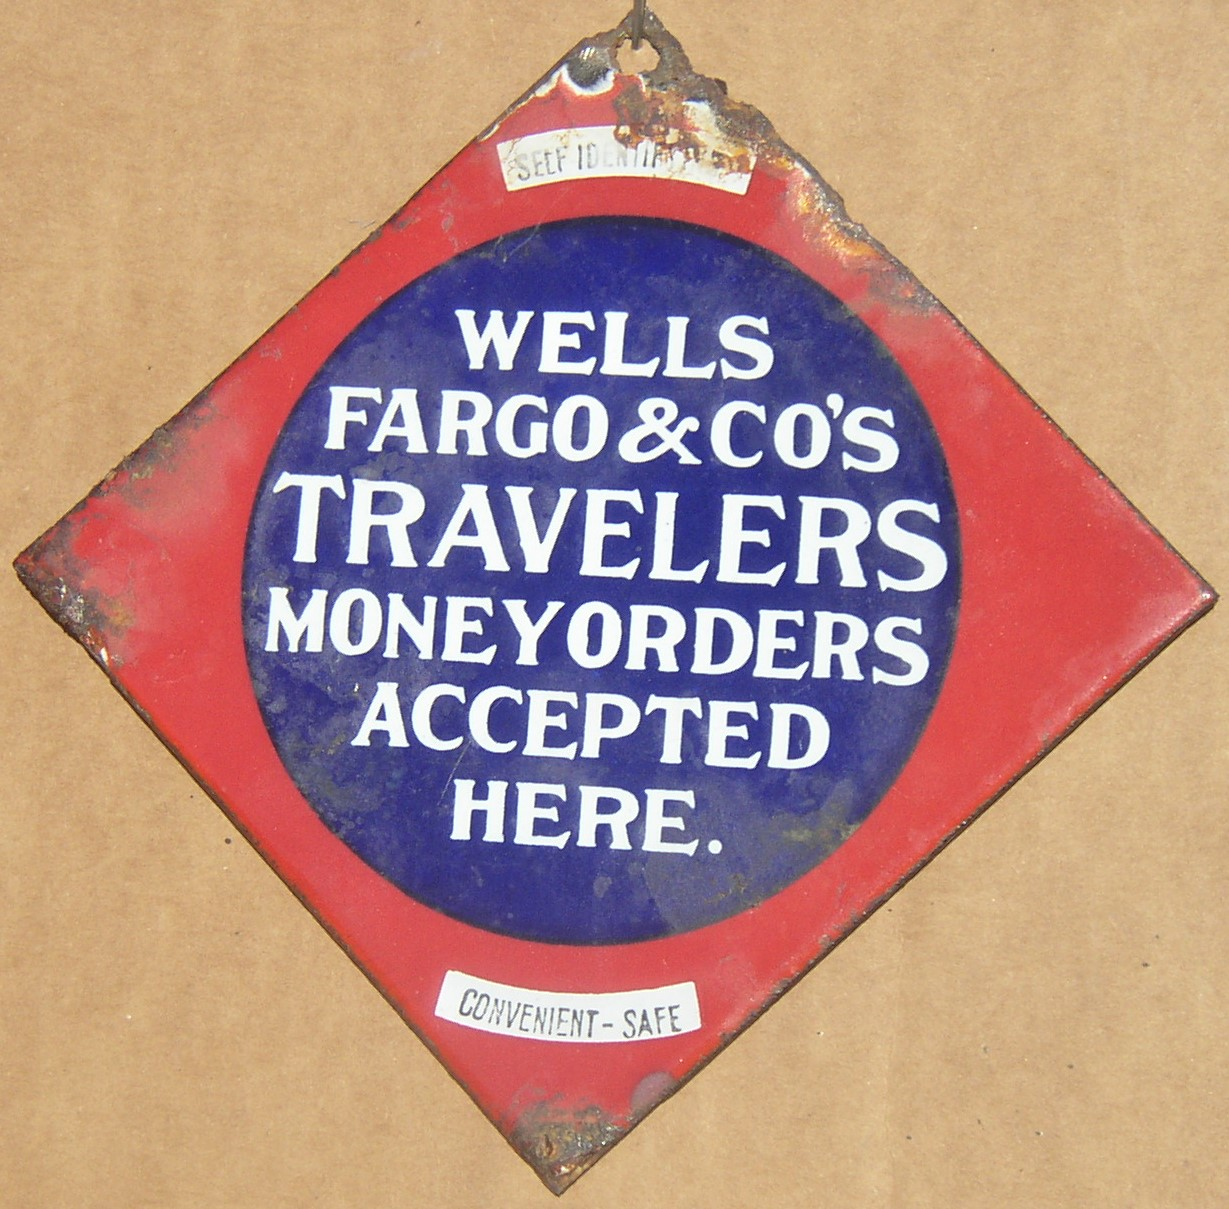 Wells Fargo & Co's Travelers Money Orders Enamel Sign, c1903